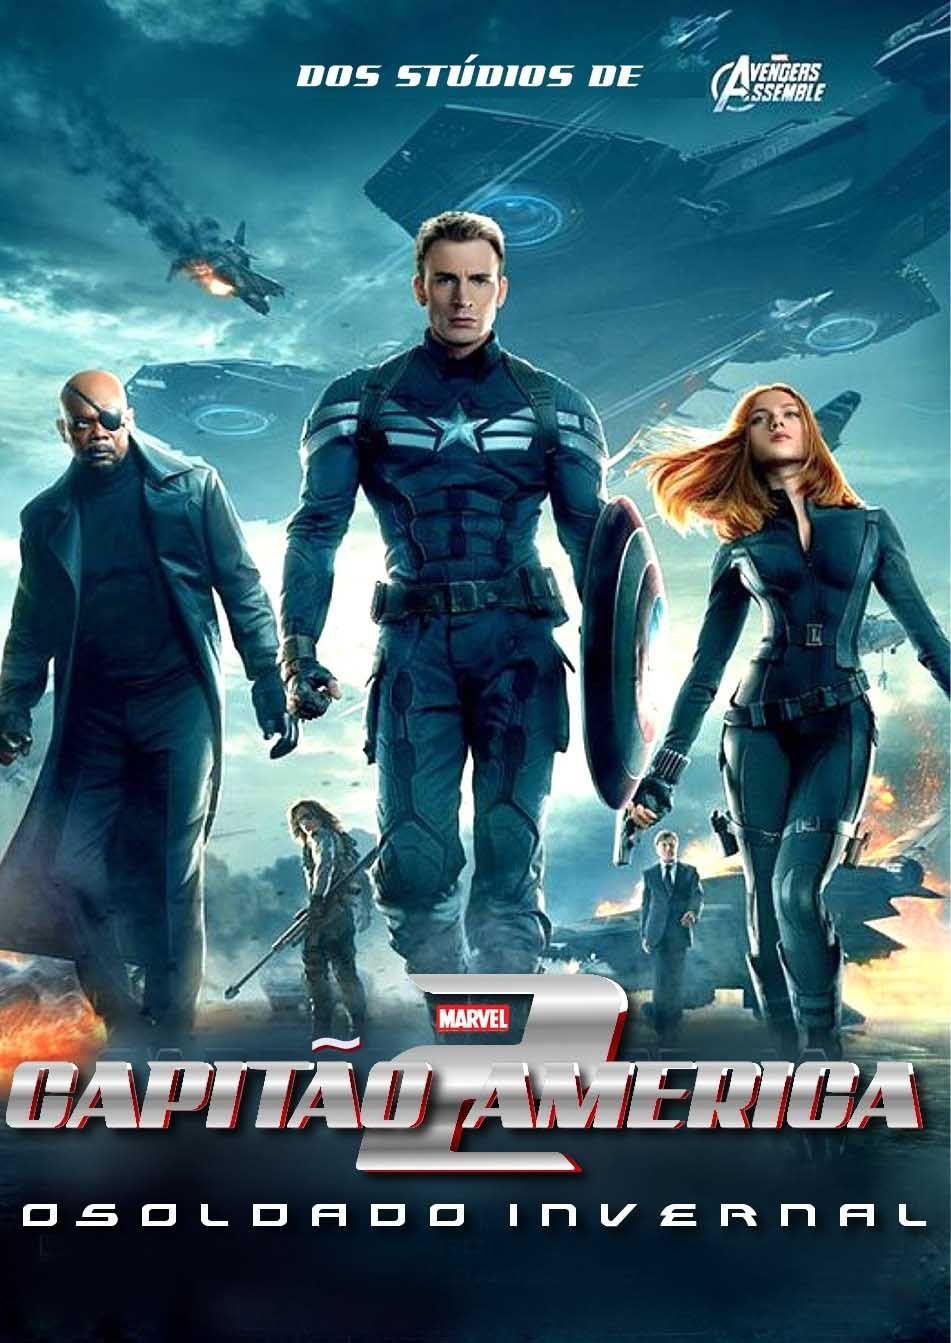 Capitão América 2: O Soldado Invernal 3D Torrent – BluRay 1080p Dual Áudio (2014)